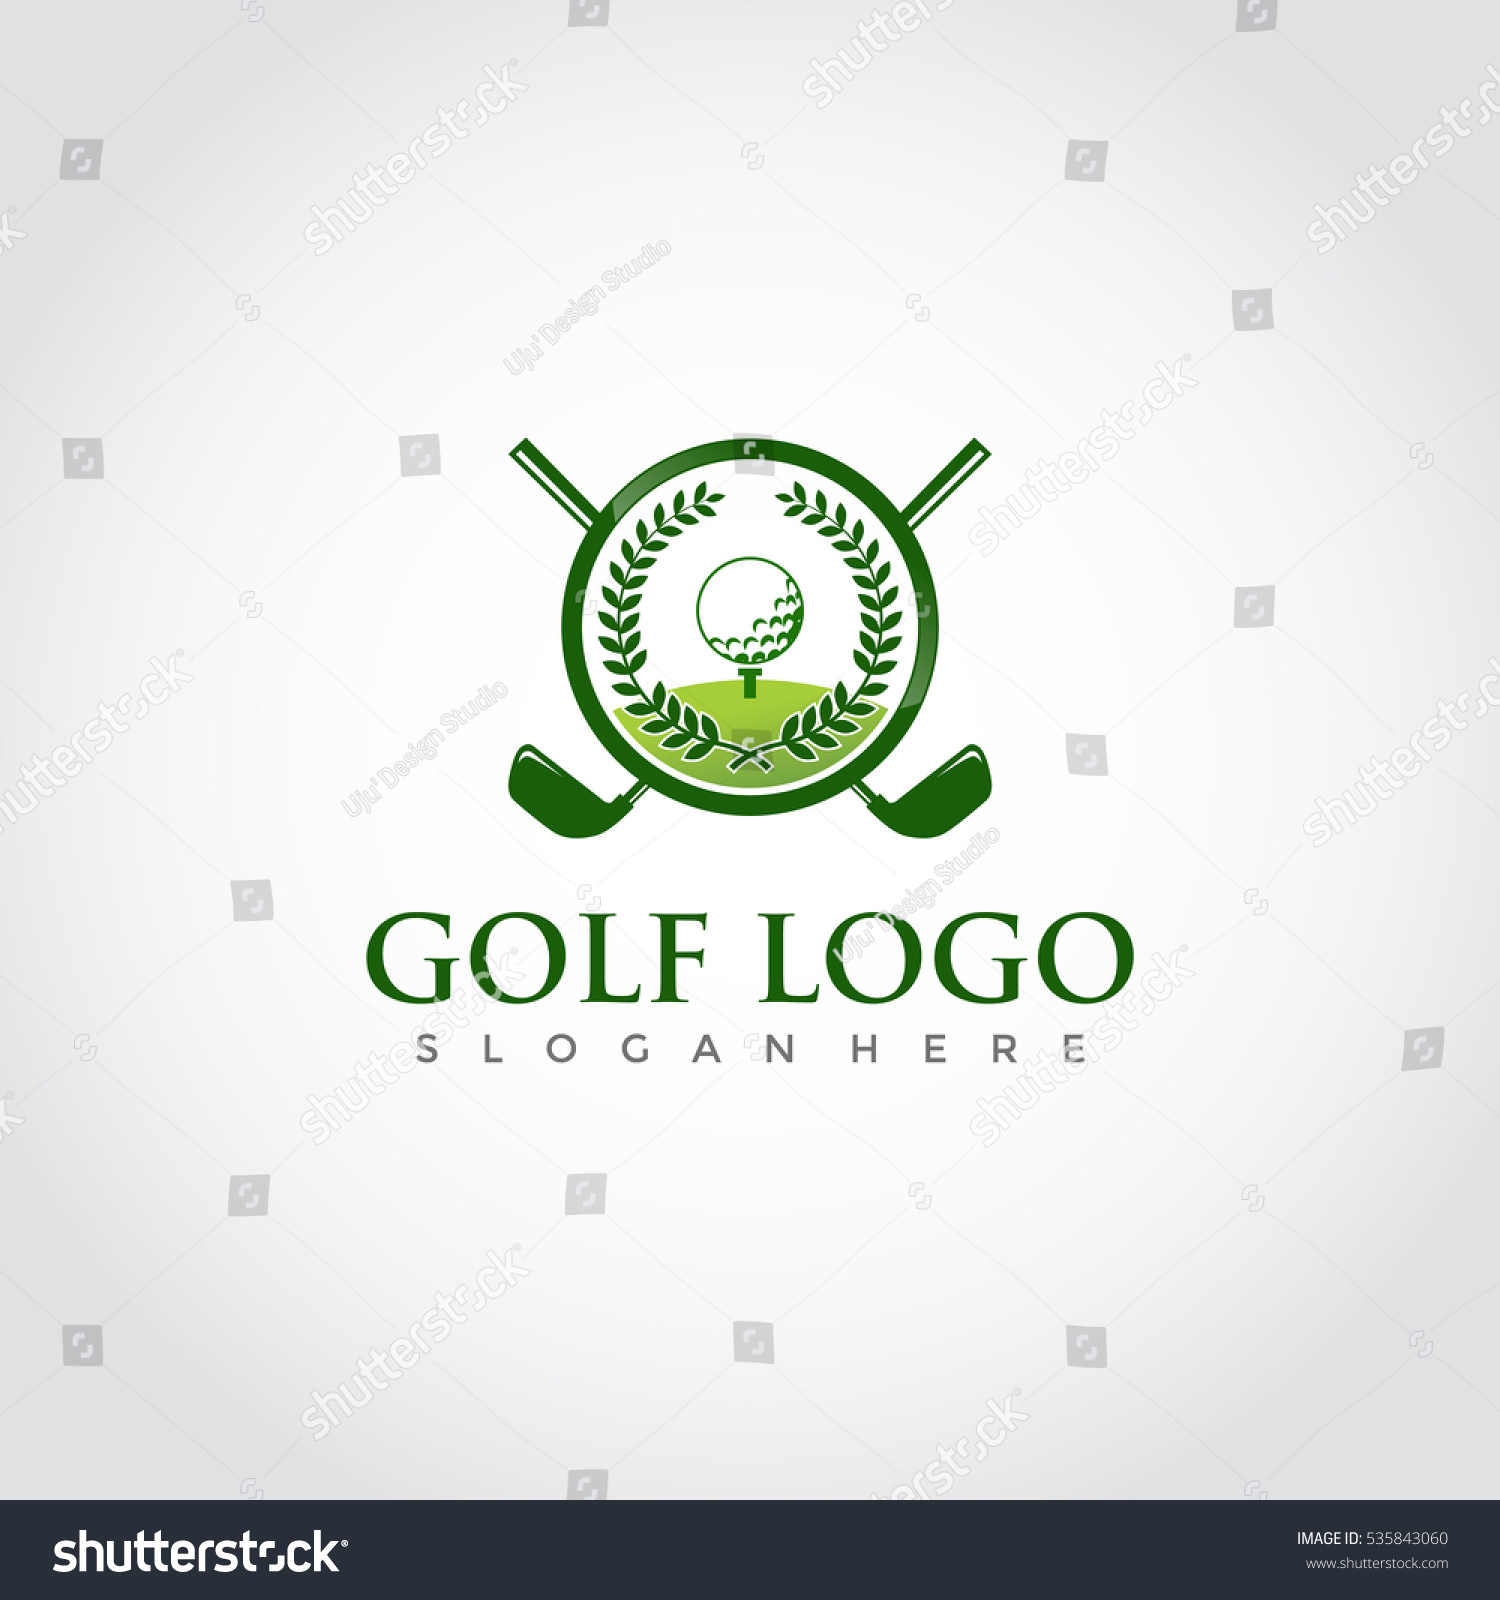 Golf Logo Images Stock Photos amp Vectors  Shutterstock